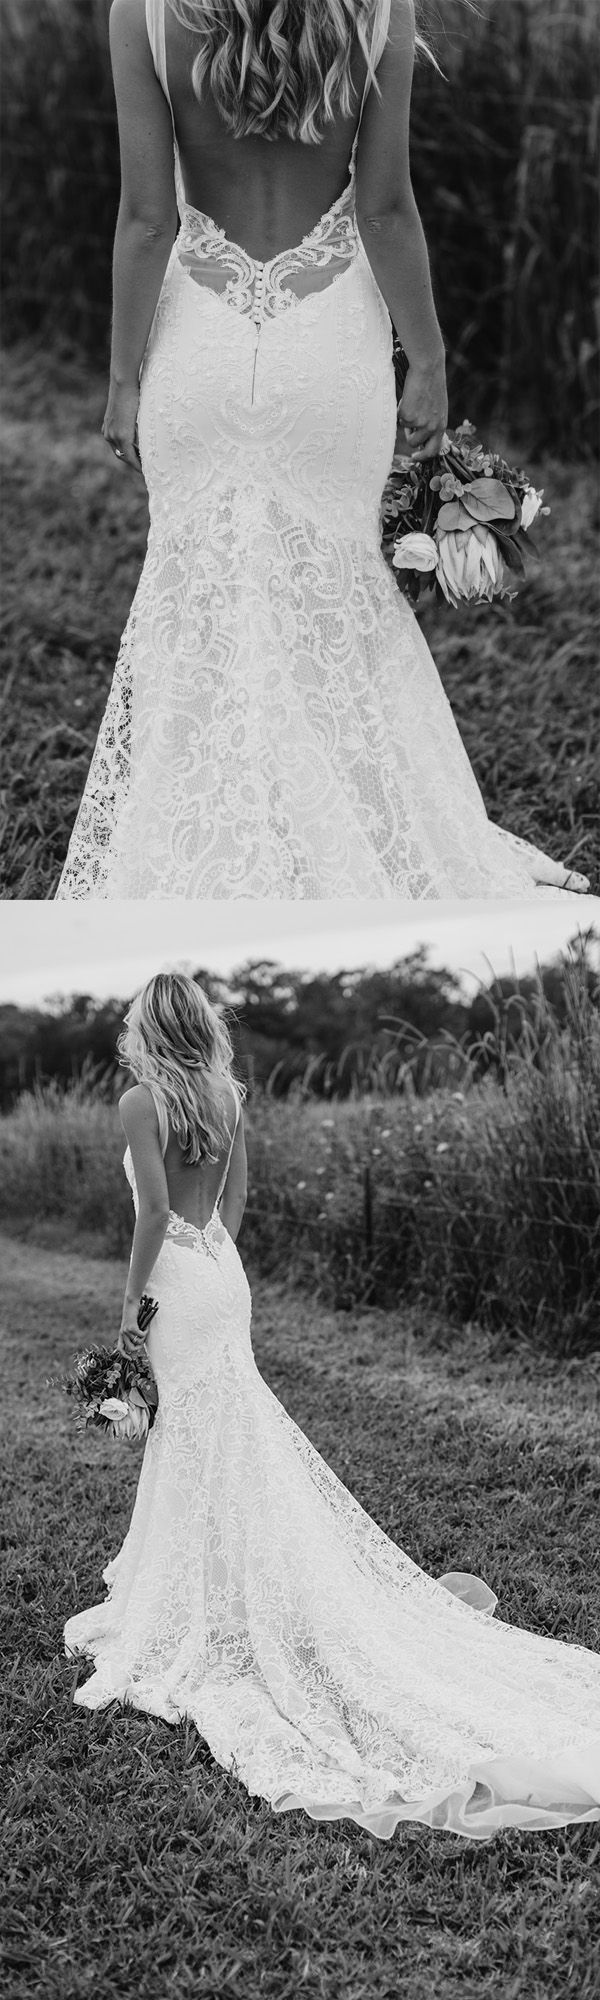 b879cf4240183 20 Stunning Open & Low Back Wedding Dresses For 2017 Brides in 2019 ...